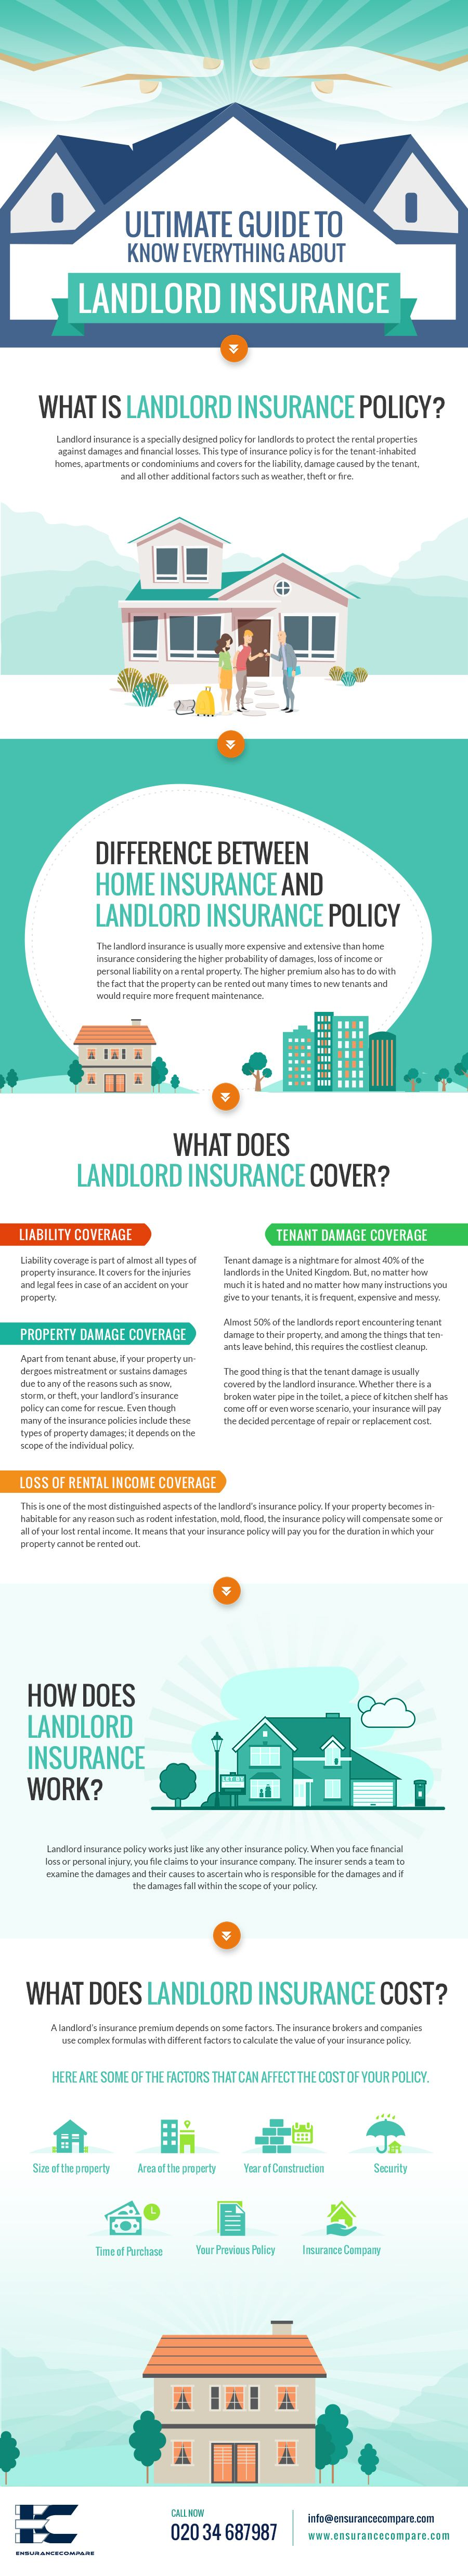 Landlord Insurance 101 Ultimate Guide To Know Everything About